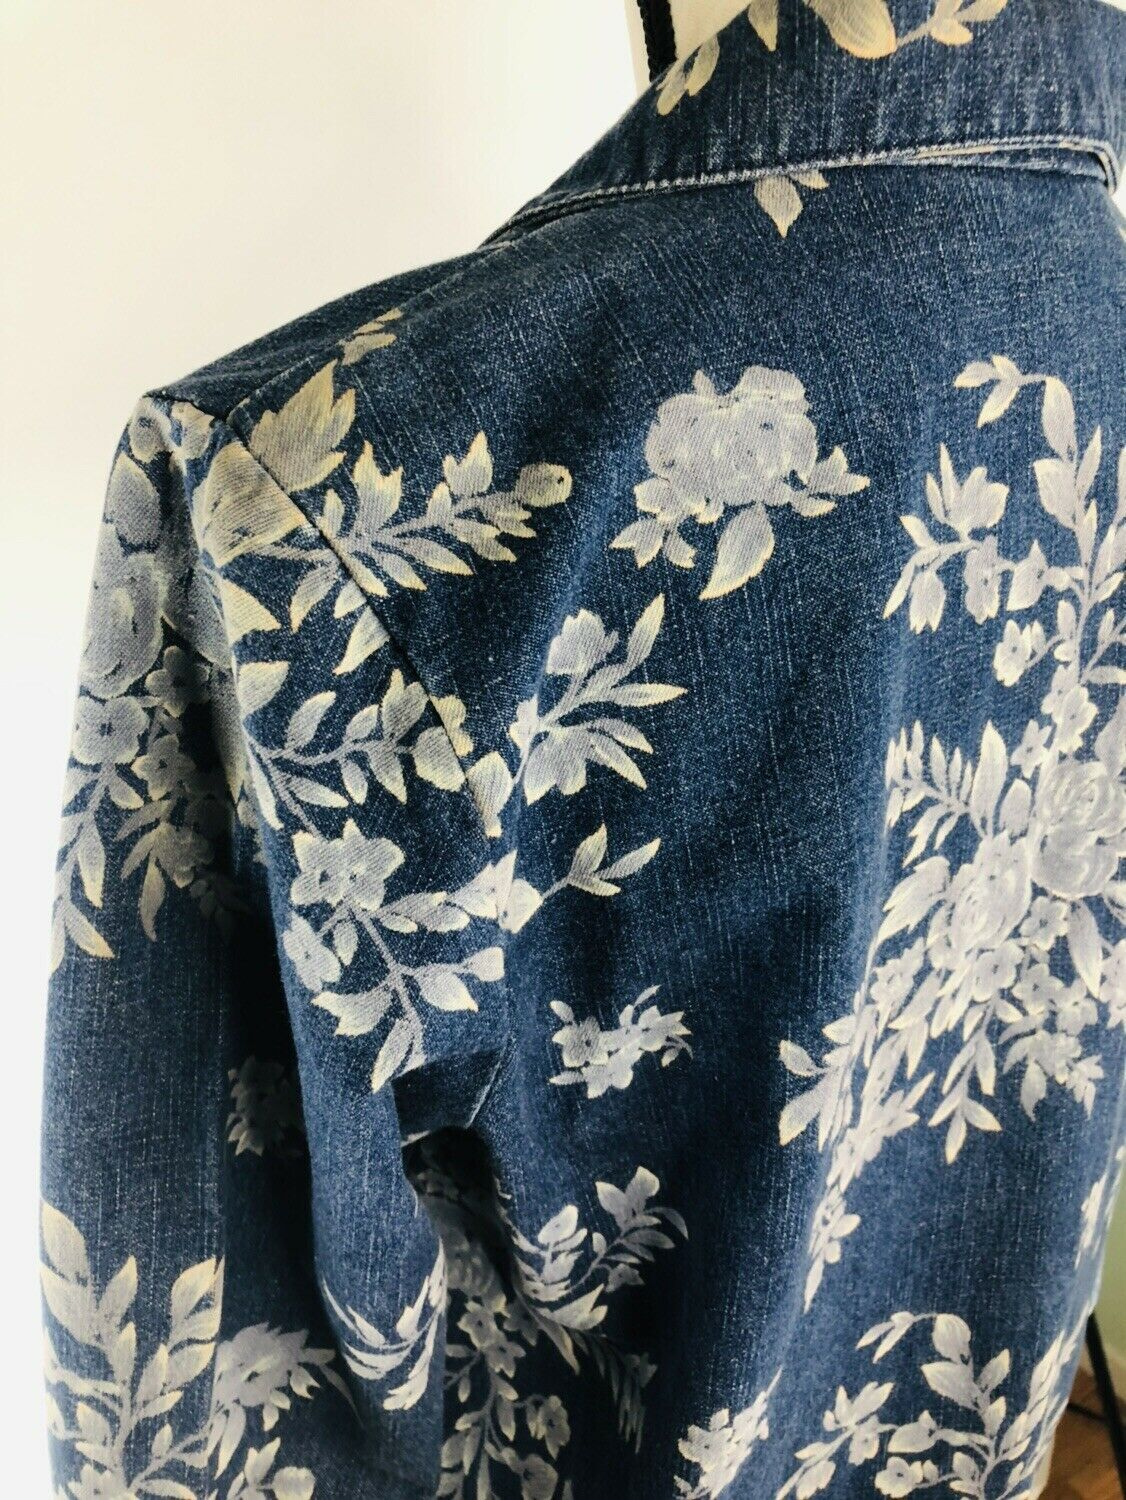 DENIM & CO Women's Jacket Blue Jean Floral Rose Flower Graphics Size Small $75